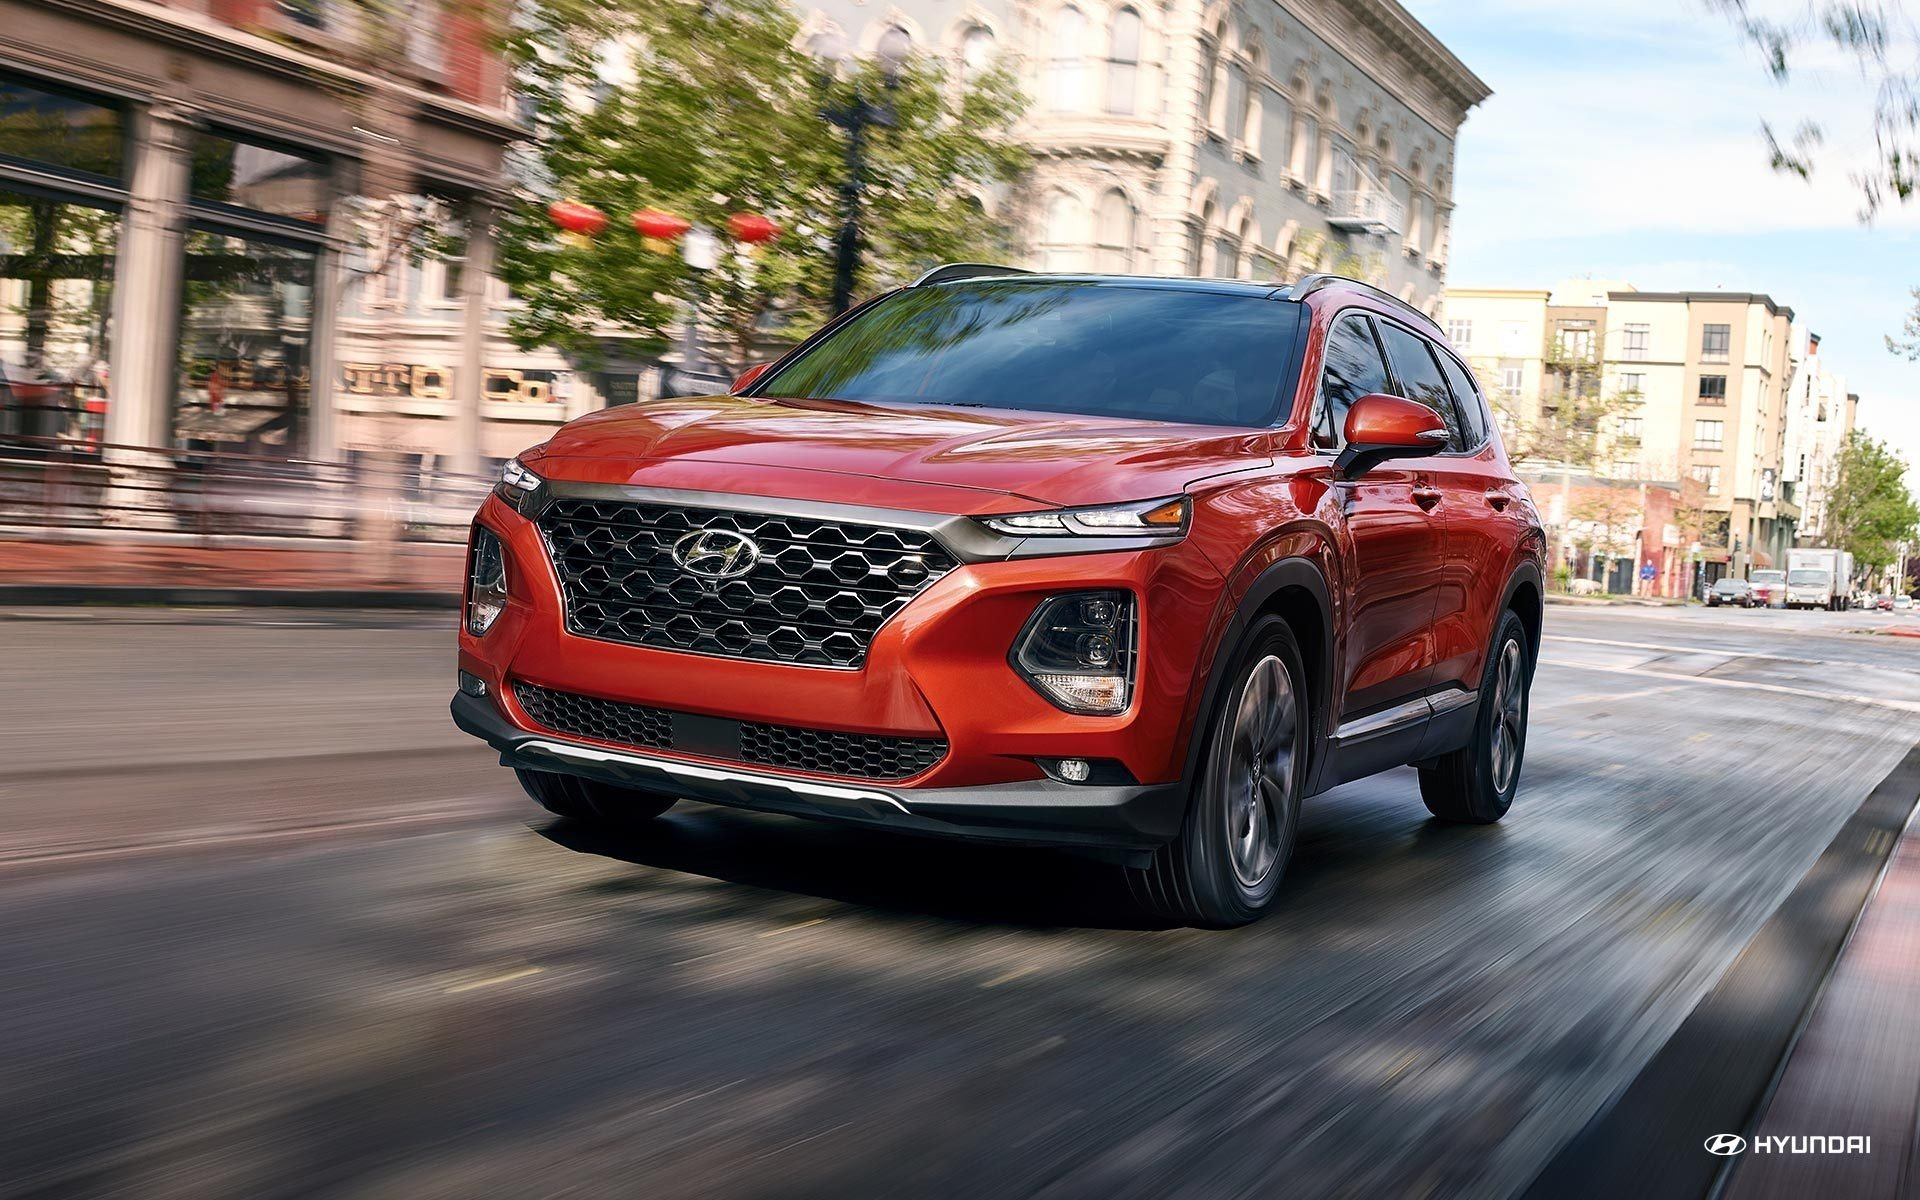 Hyundai Santa Fe Best-selling SUVs